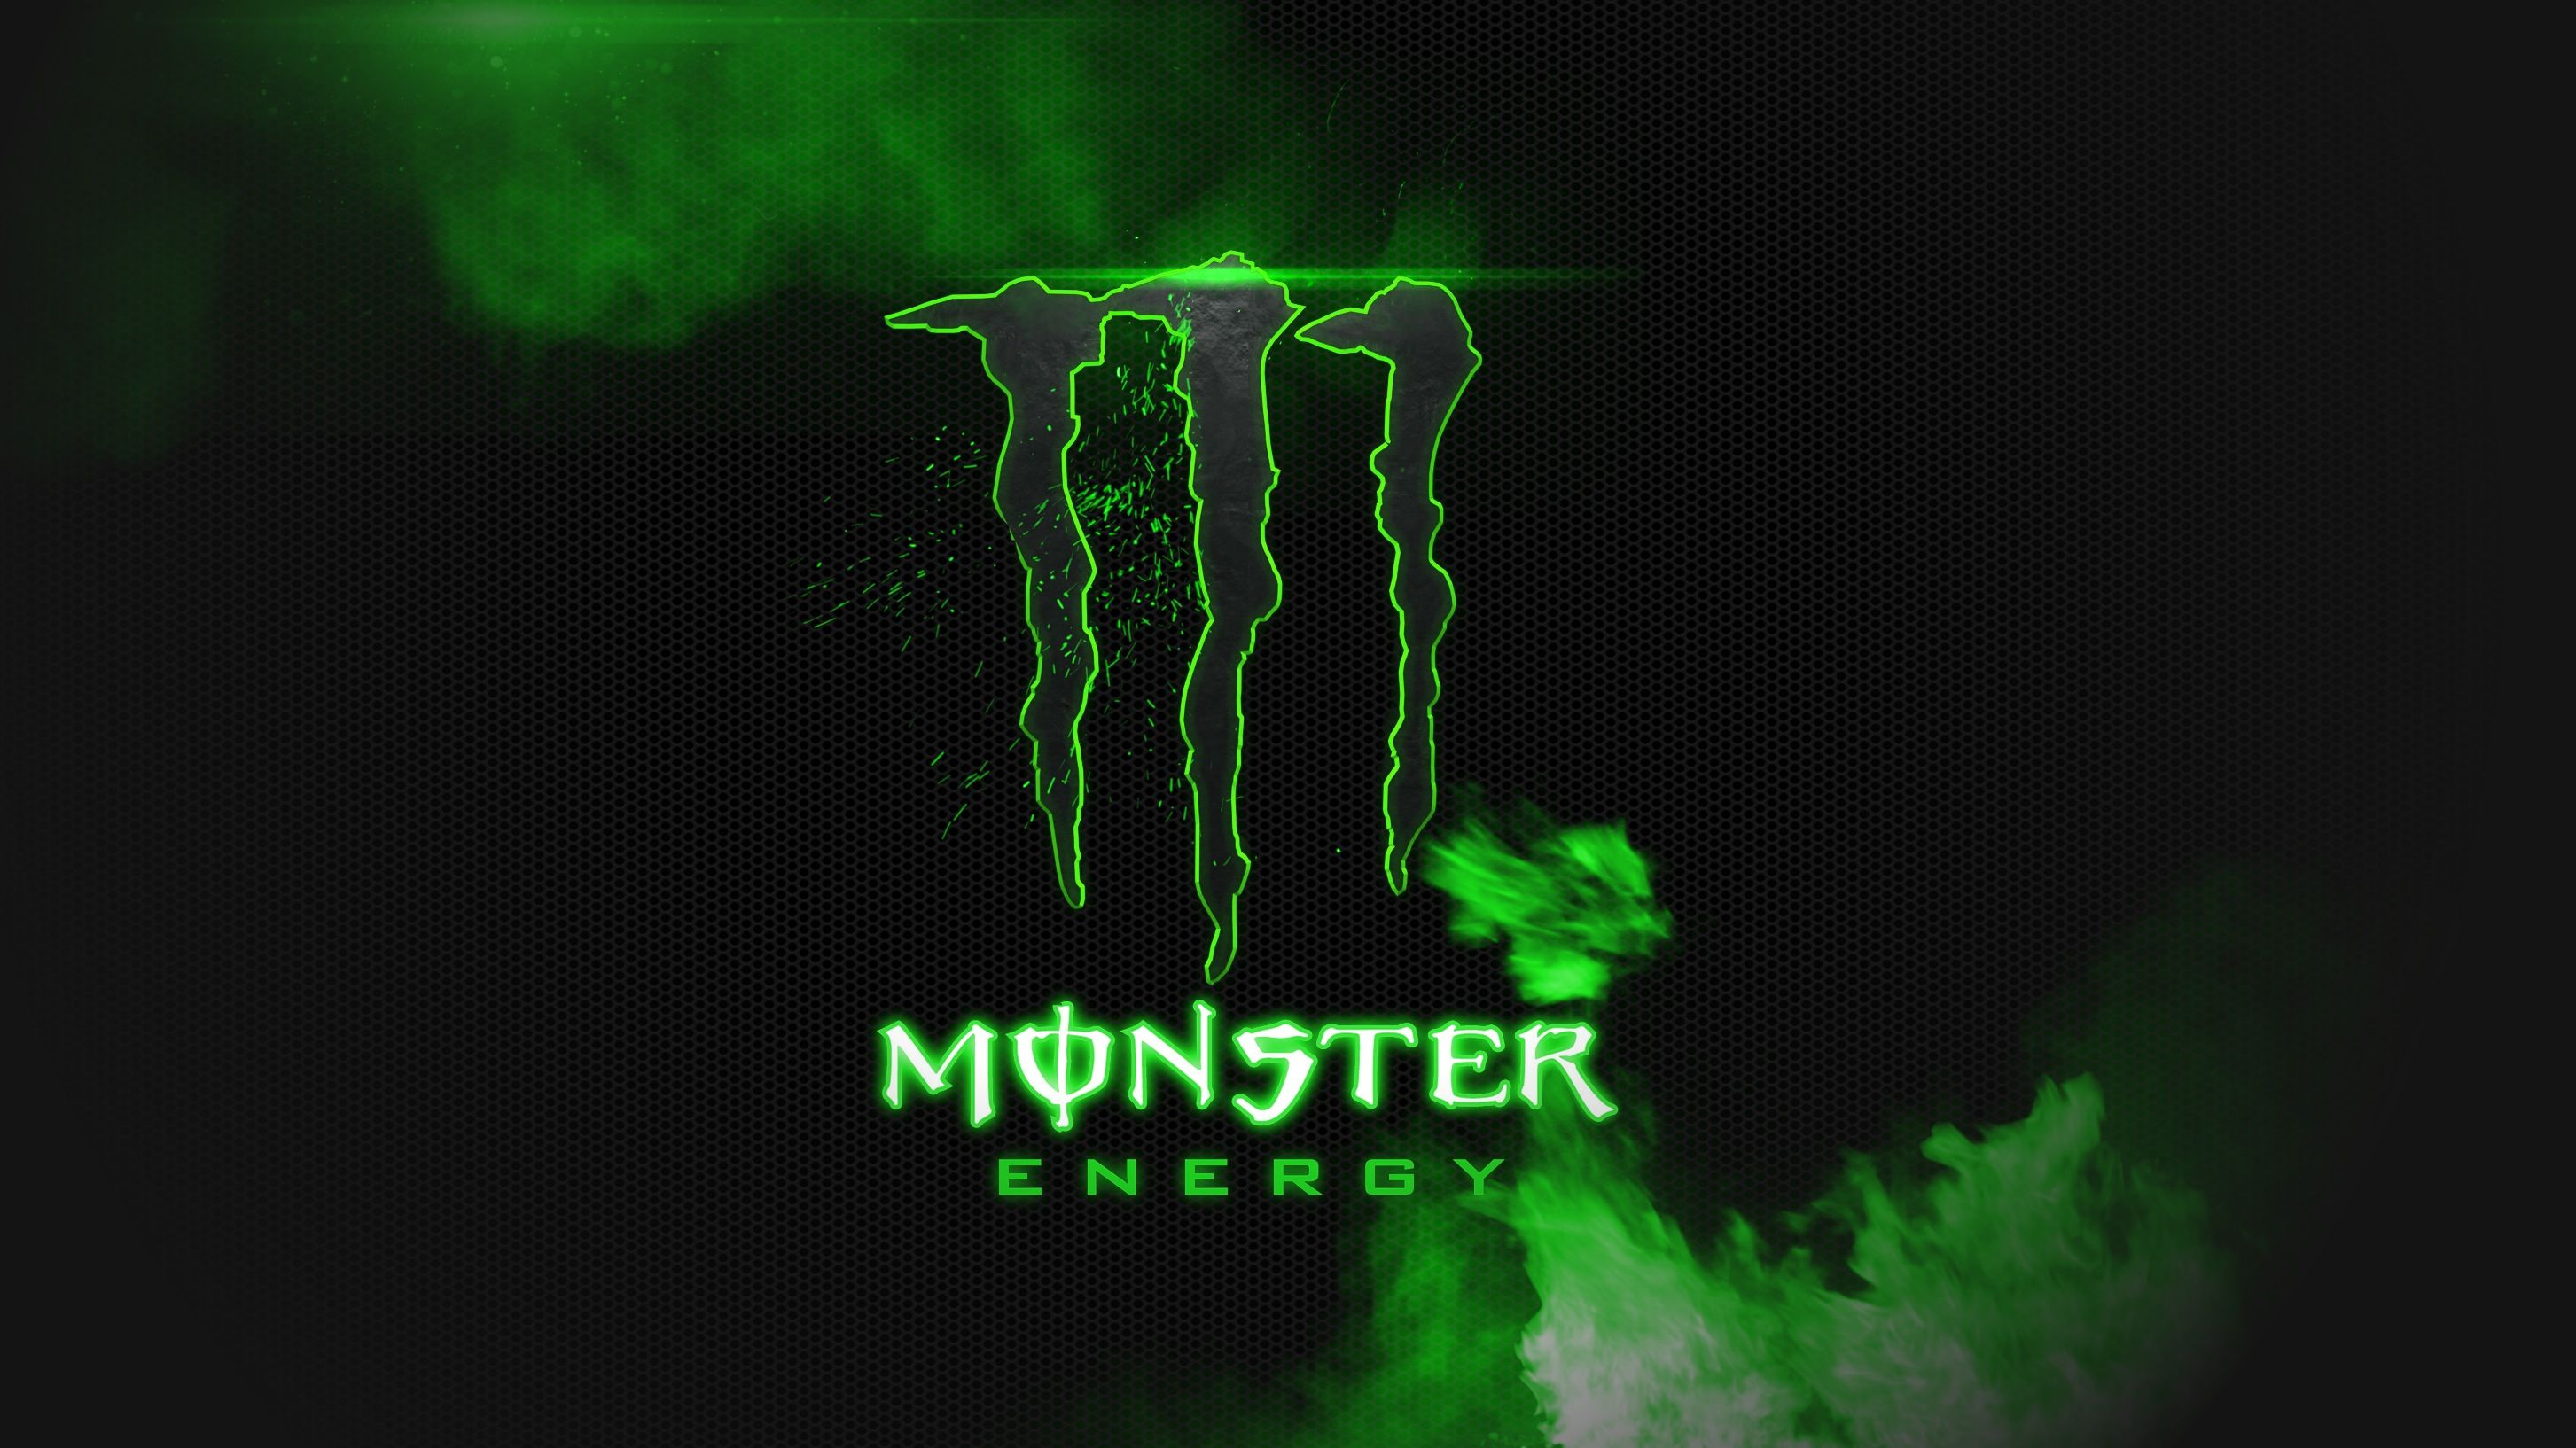 monster energy black and green hd wallpaper background image maria